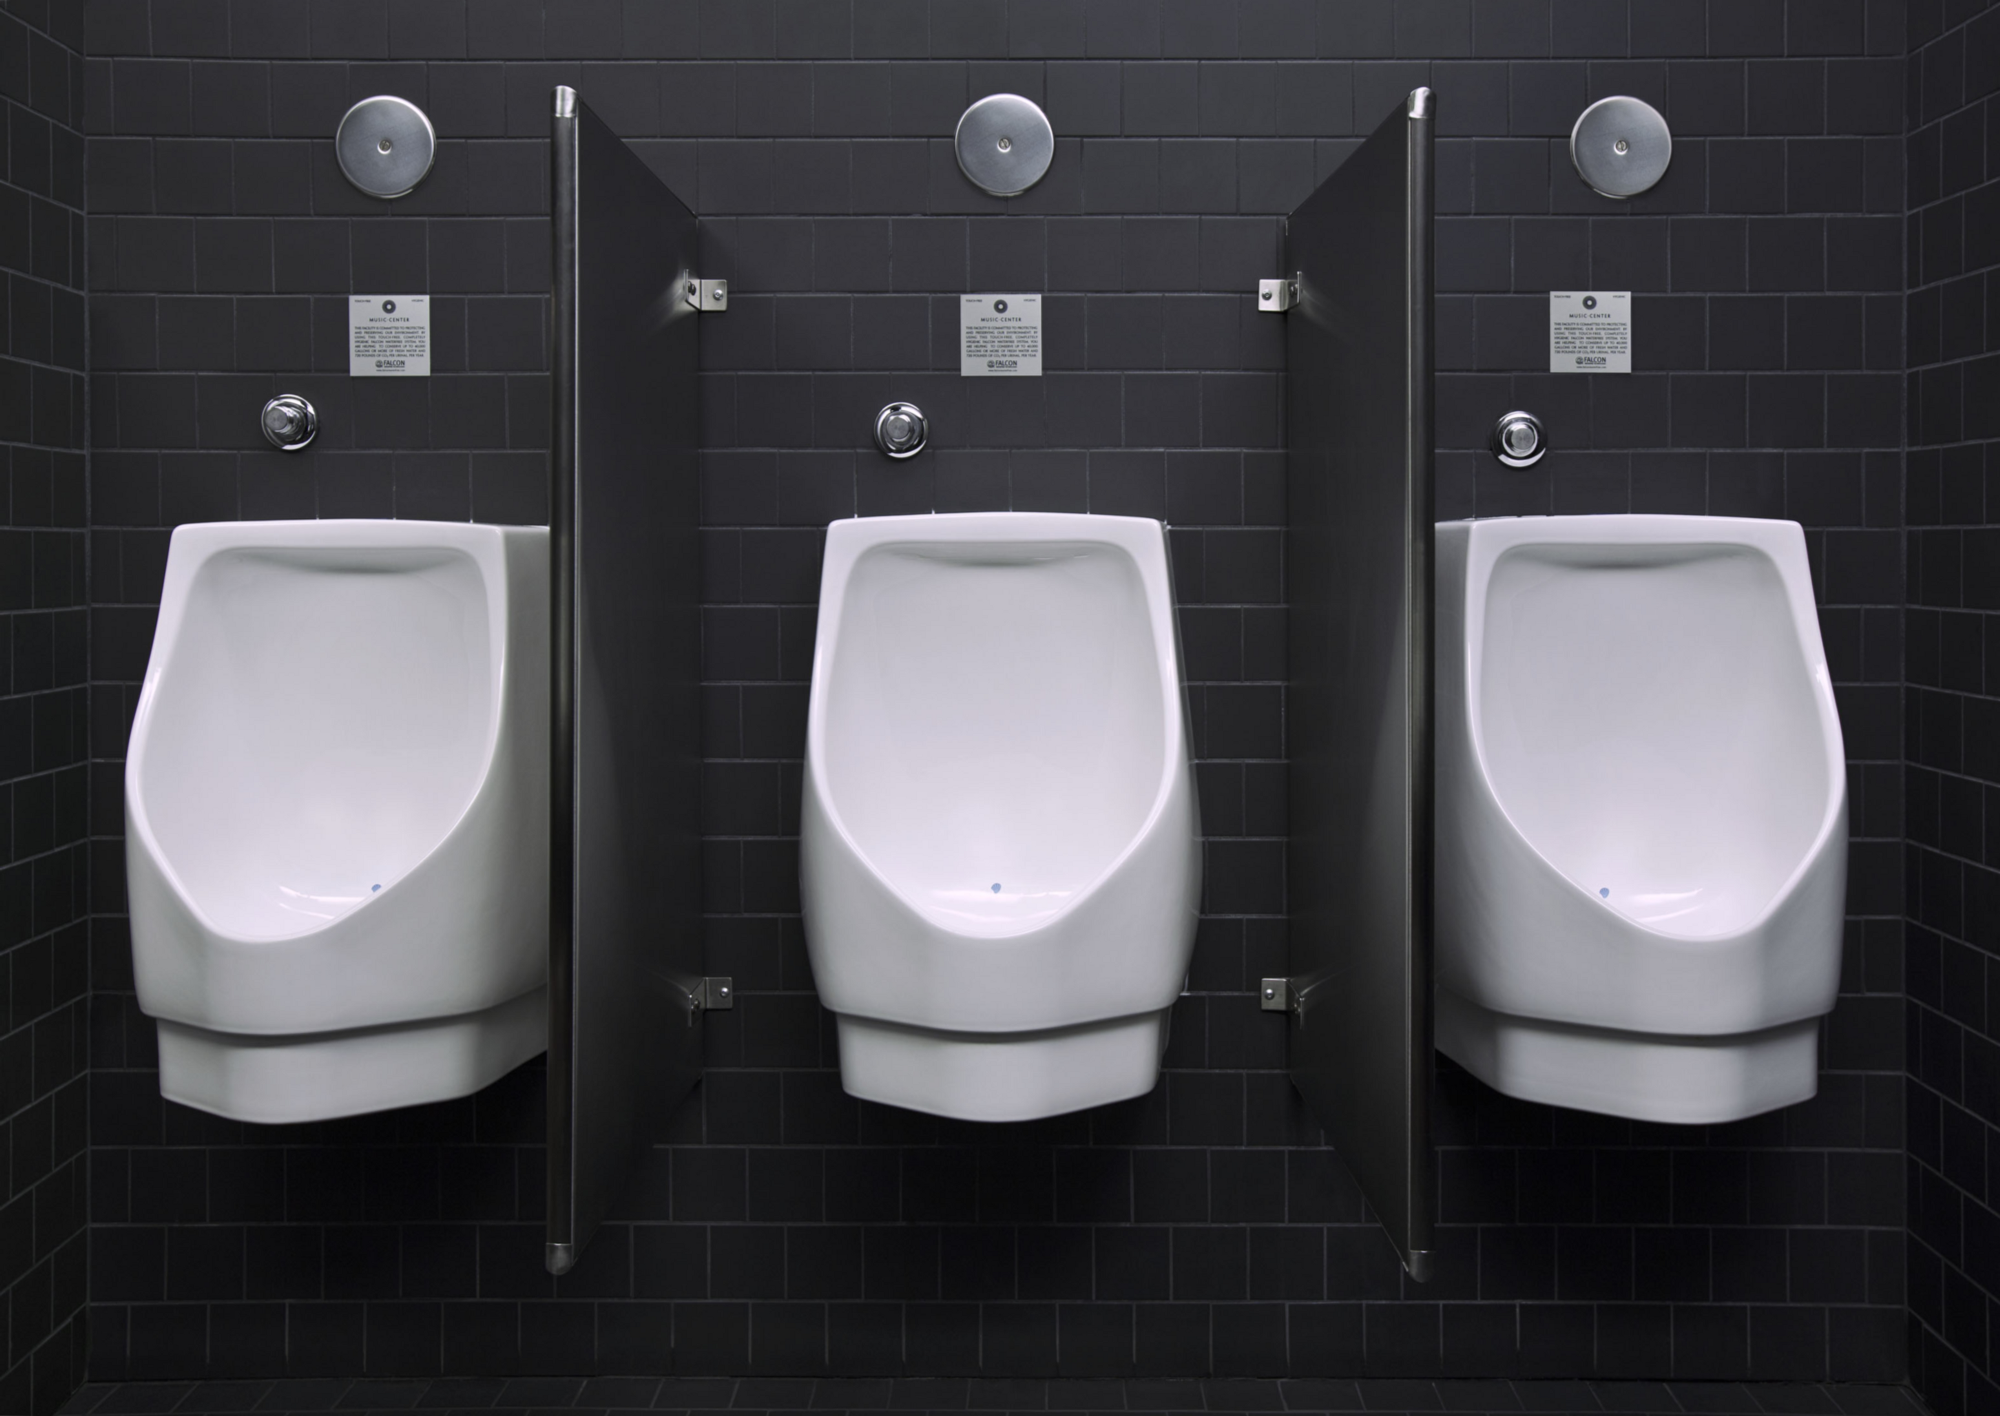 Is A Divider Required To Separate A Urinal And Water Closet In A Single  Restroom?